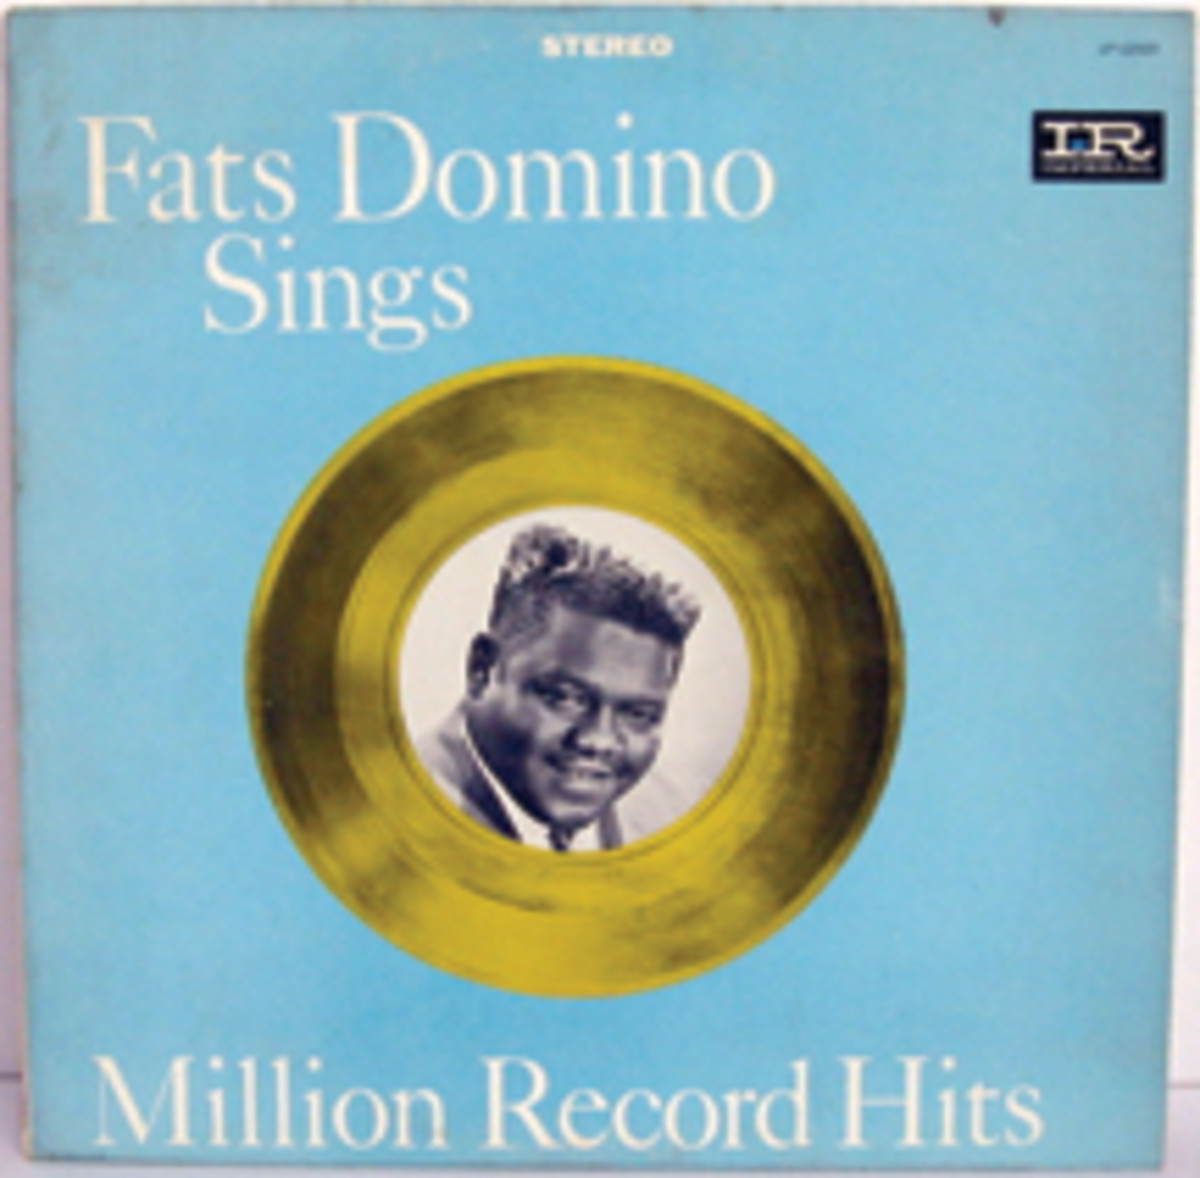 Fats Domino Sings Million Record Hits